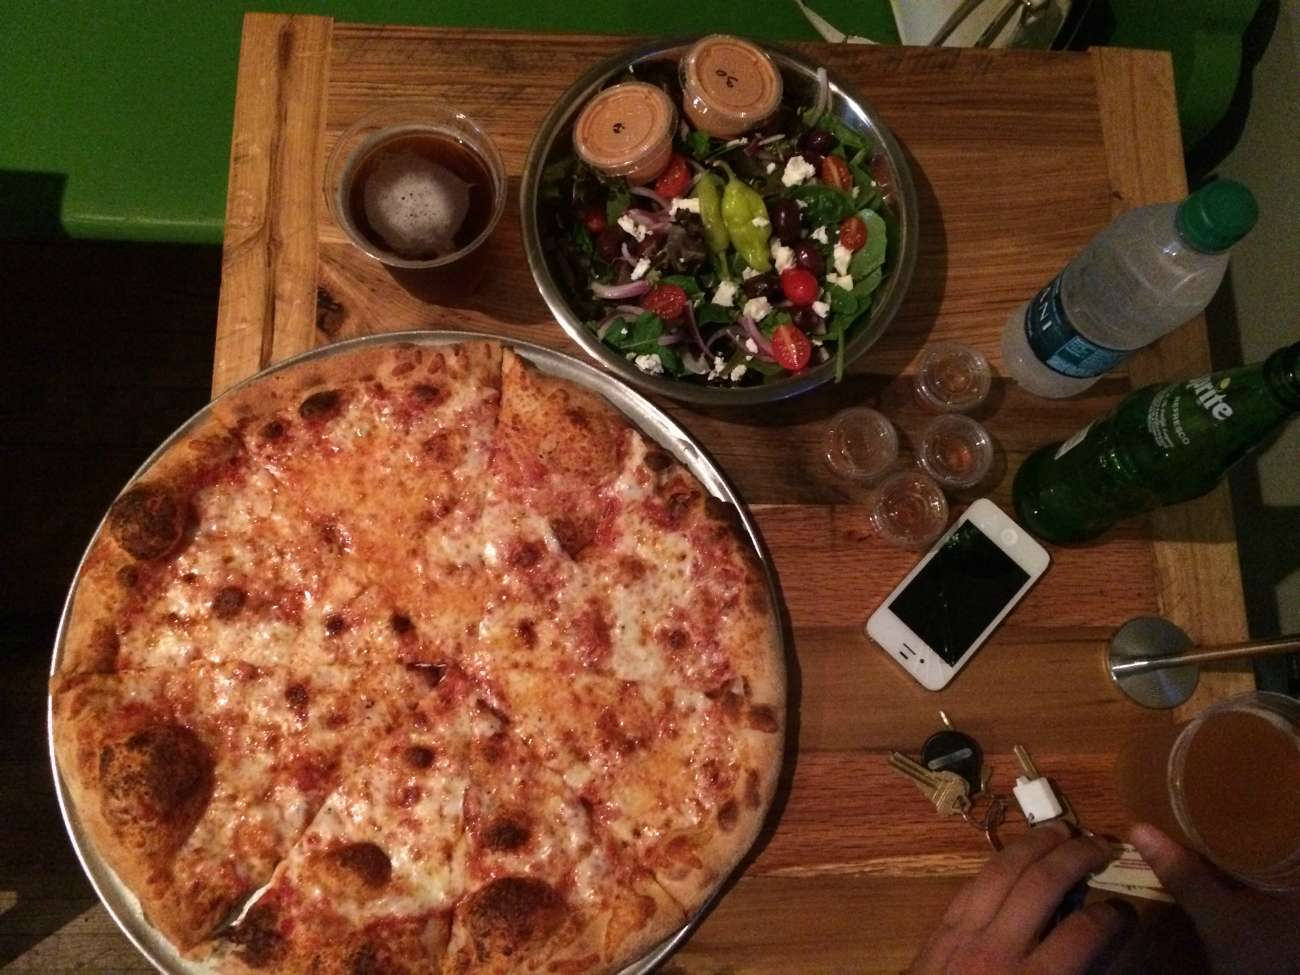 #pizzamidwood: Pure Pizza is now open in Plaza Midwood